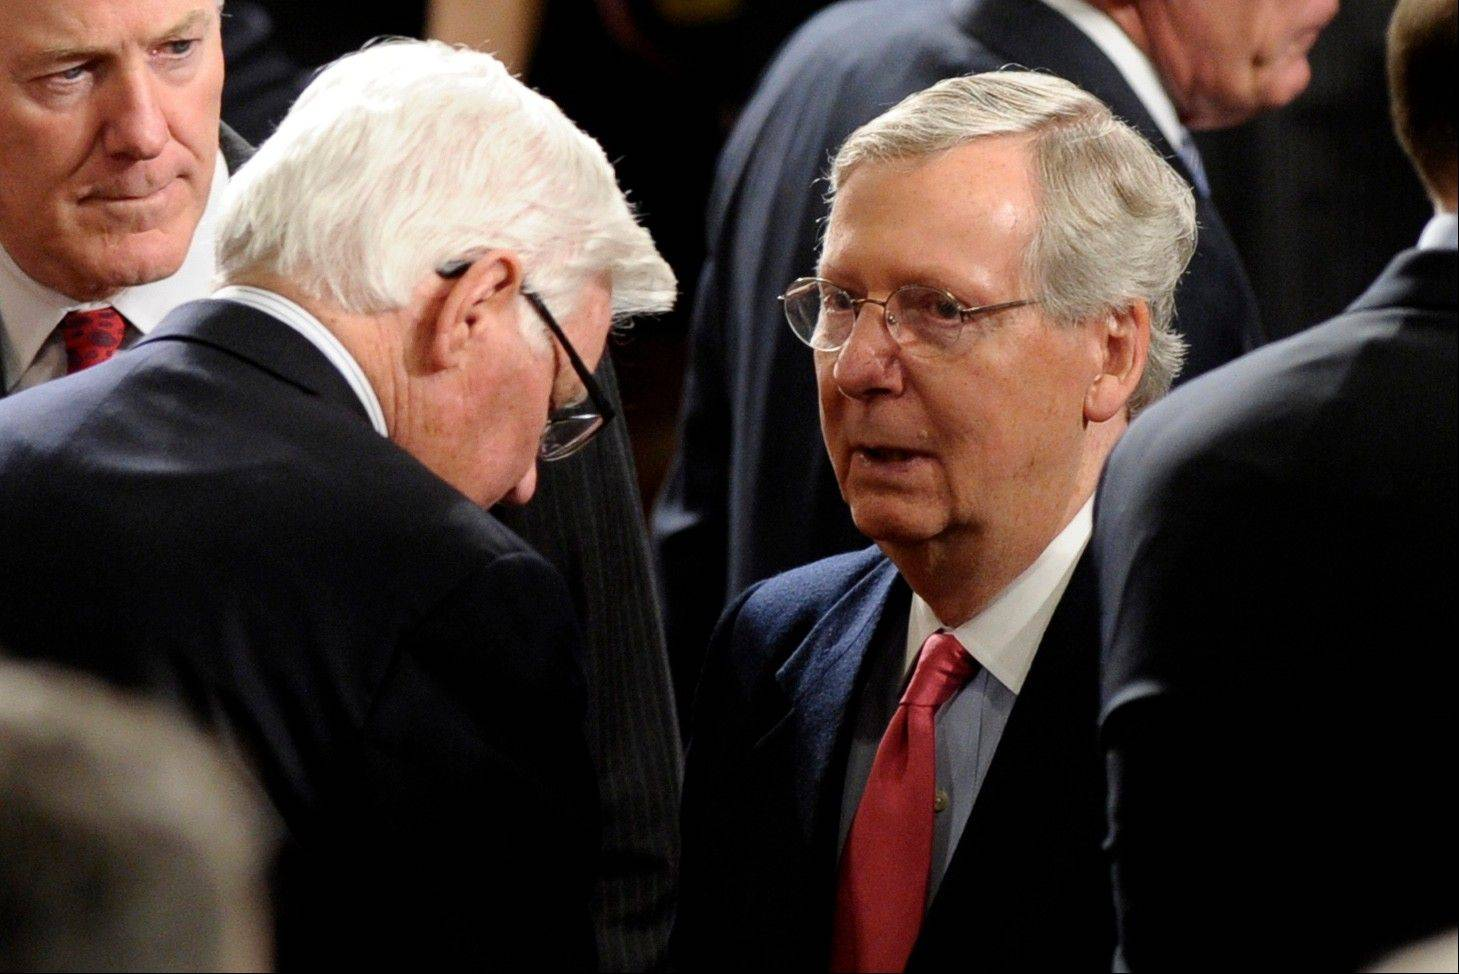 Senate Minority Leader Mitch McConnell of Ky. arrives for President Barack Obama's State of the Union address on Capitol Hill in Washington, Tuesday Jan. 28, 2014.